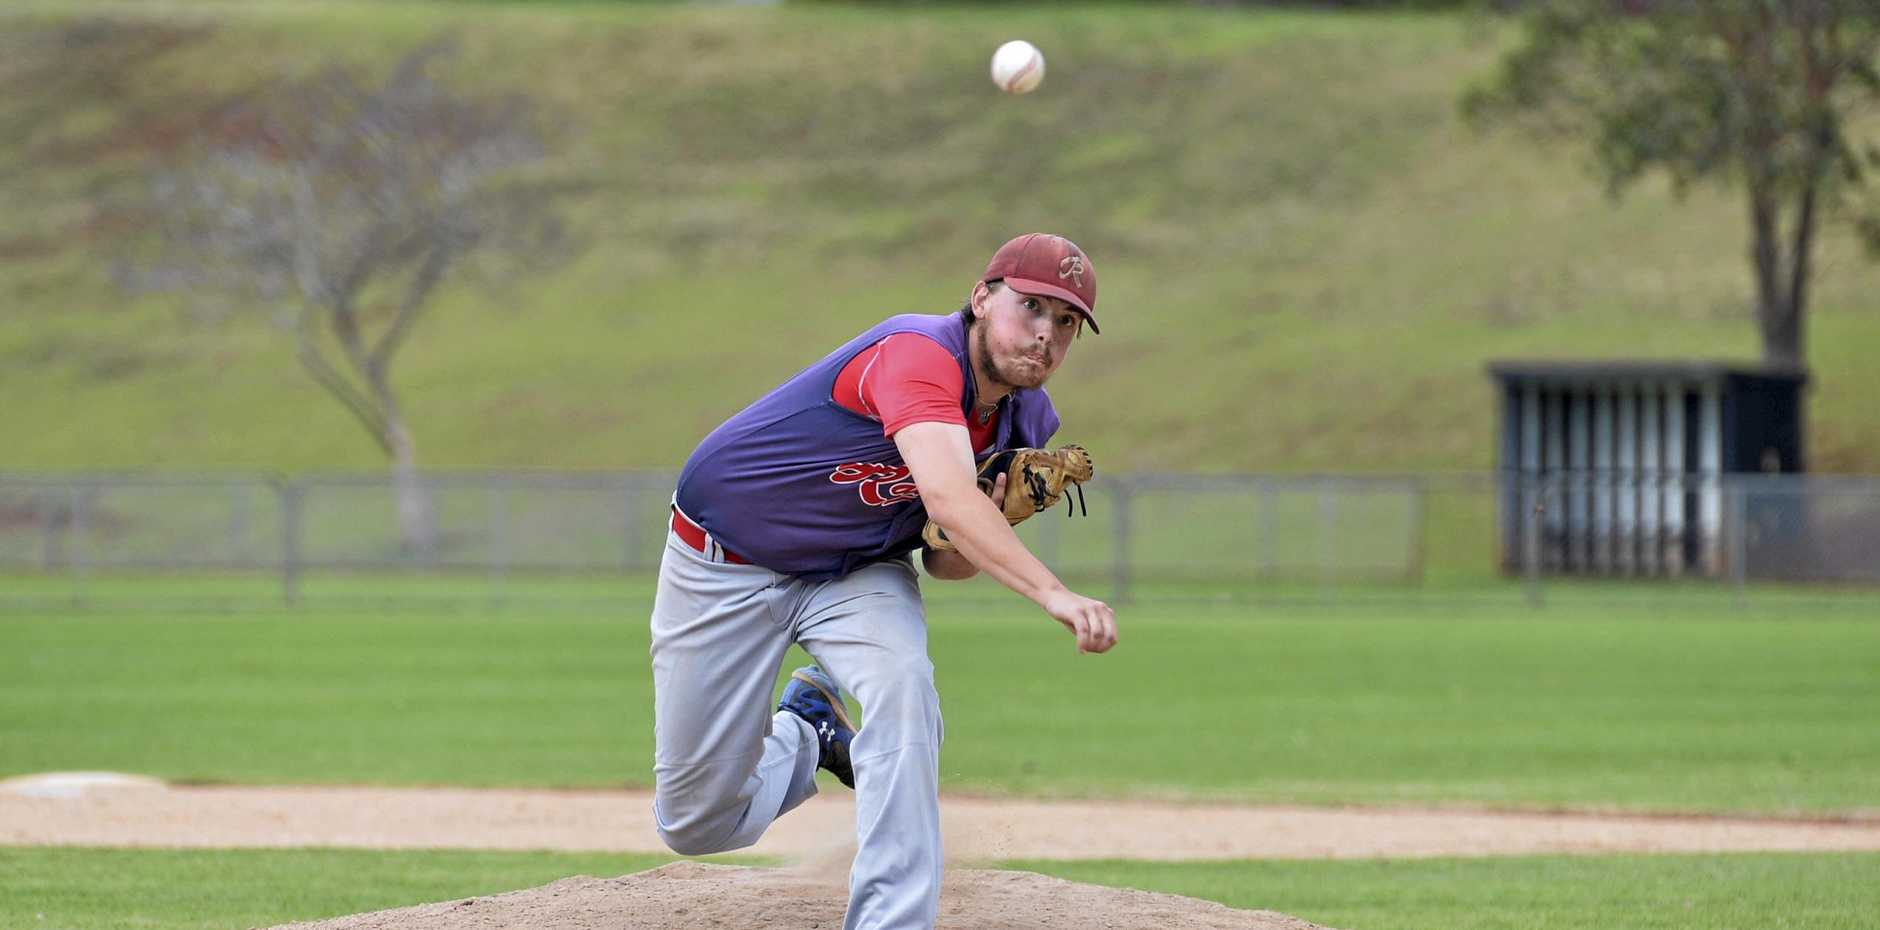 Nathan Drewes on the mound for Toowoomba Rangers against Pine Hills in their round-two clash.